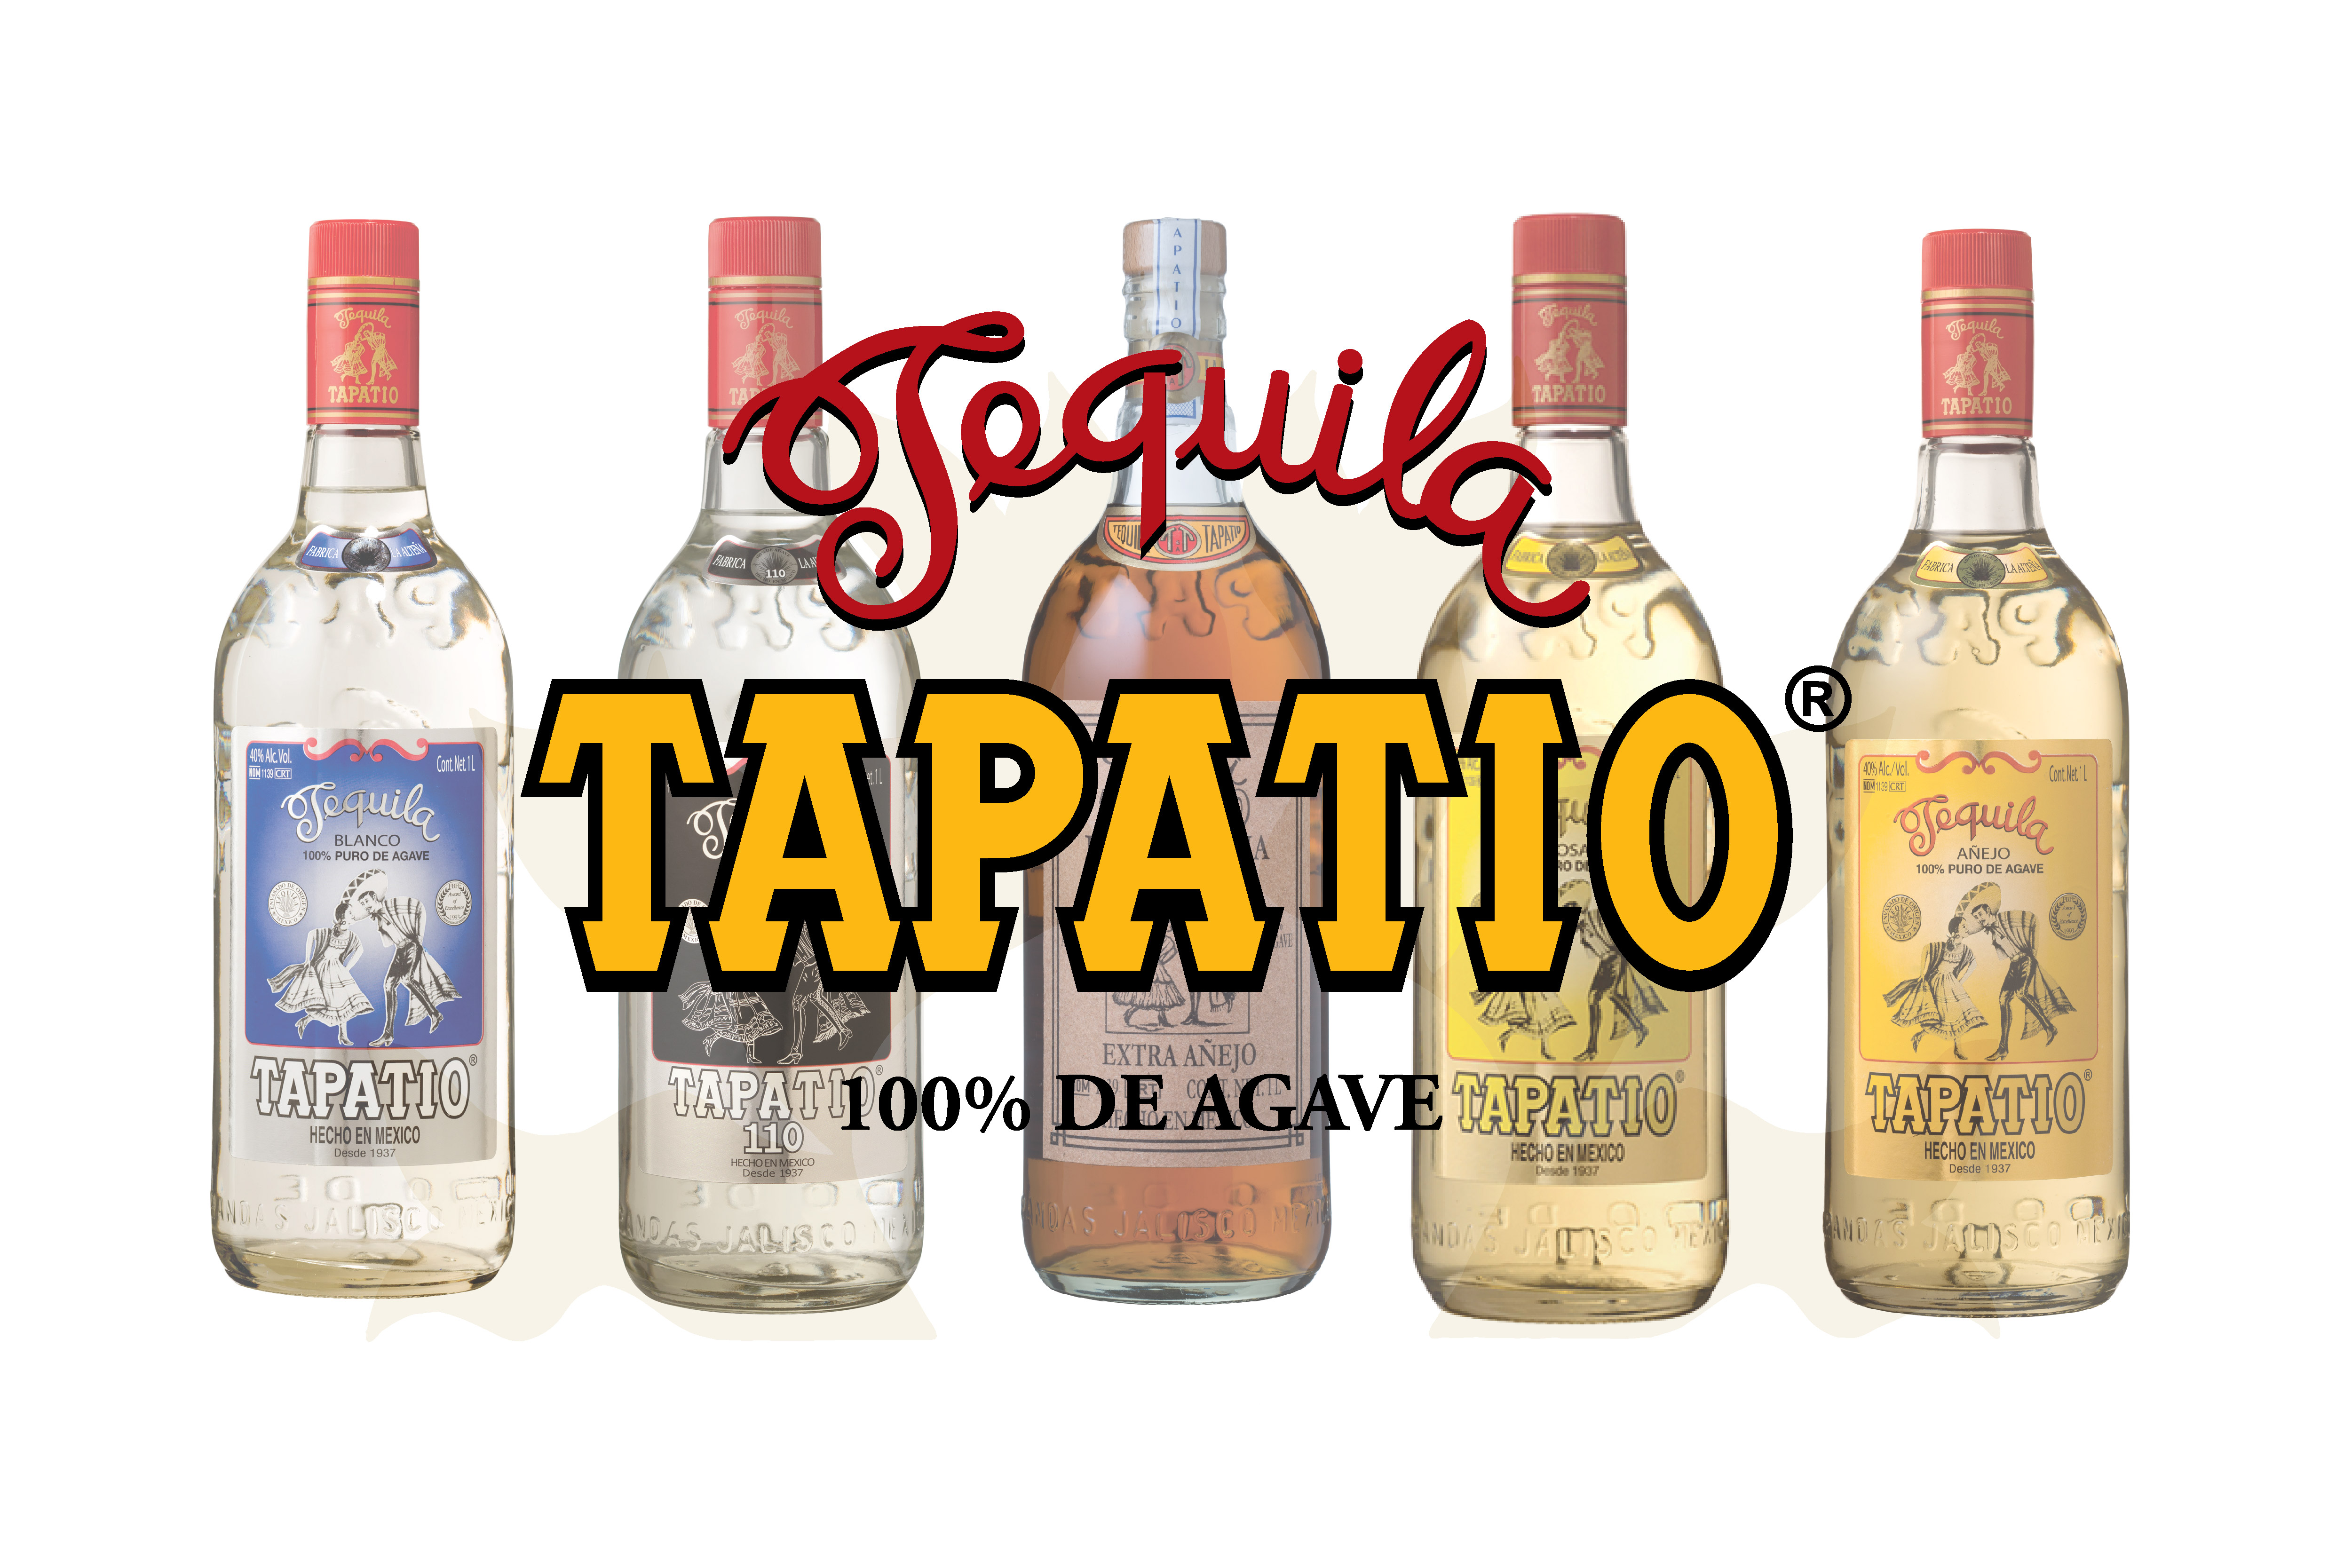 Tequila Tapatio Image